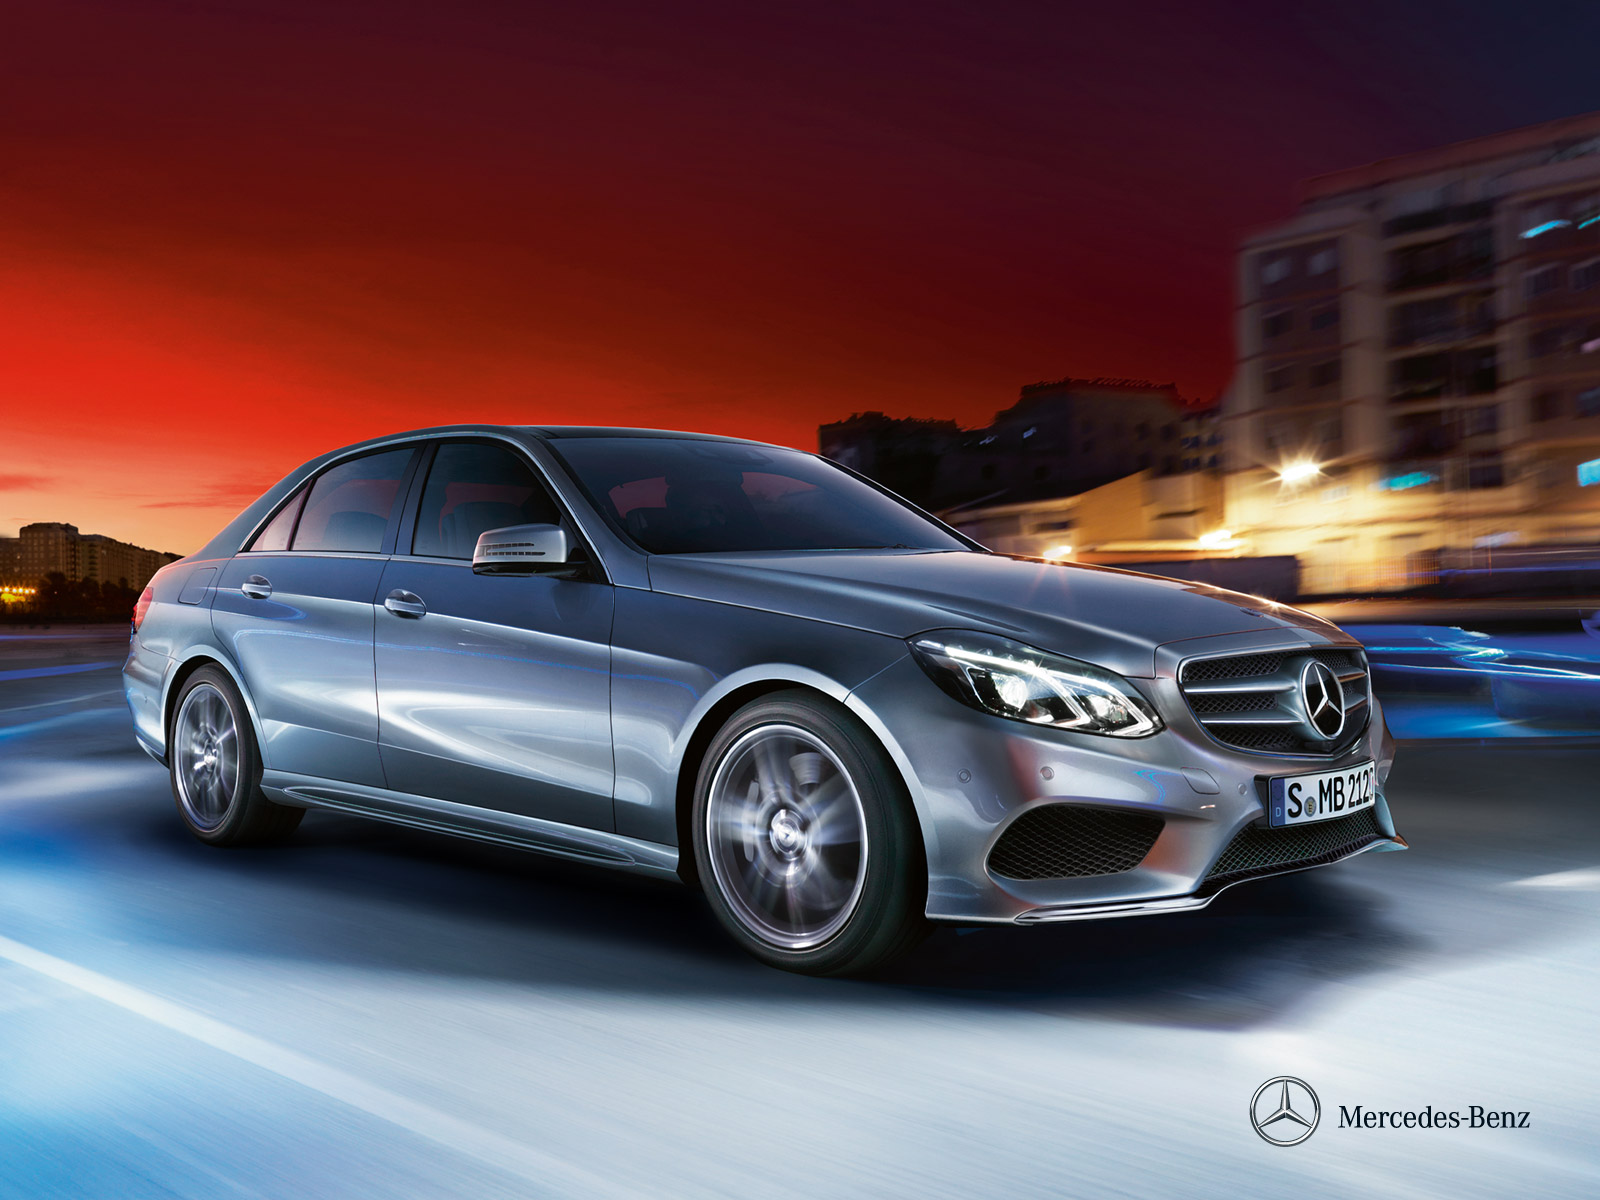 mercedes-benz-e-class-saloon-w212_wallpaper_02_1600x1200__03-2013